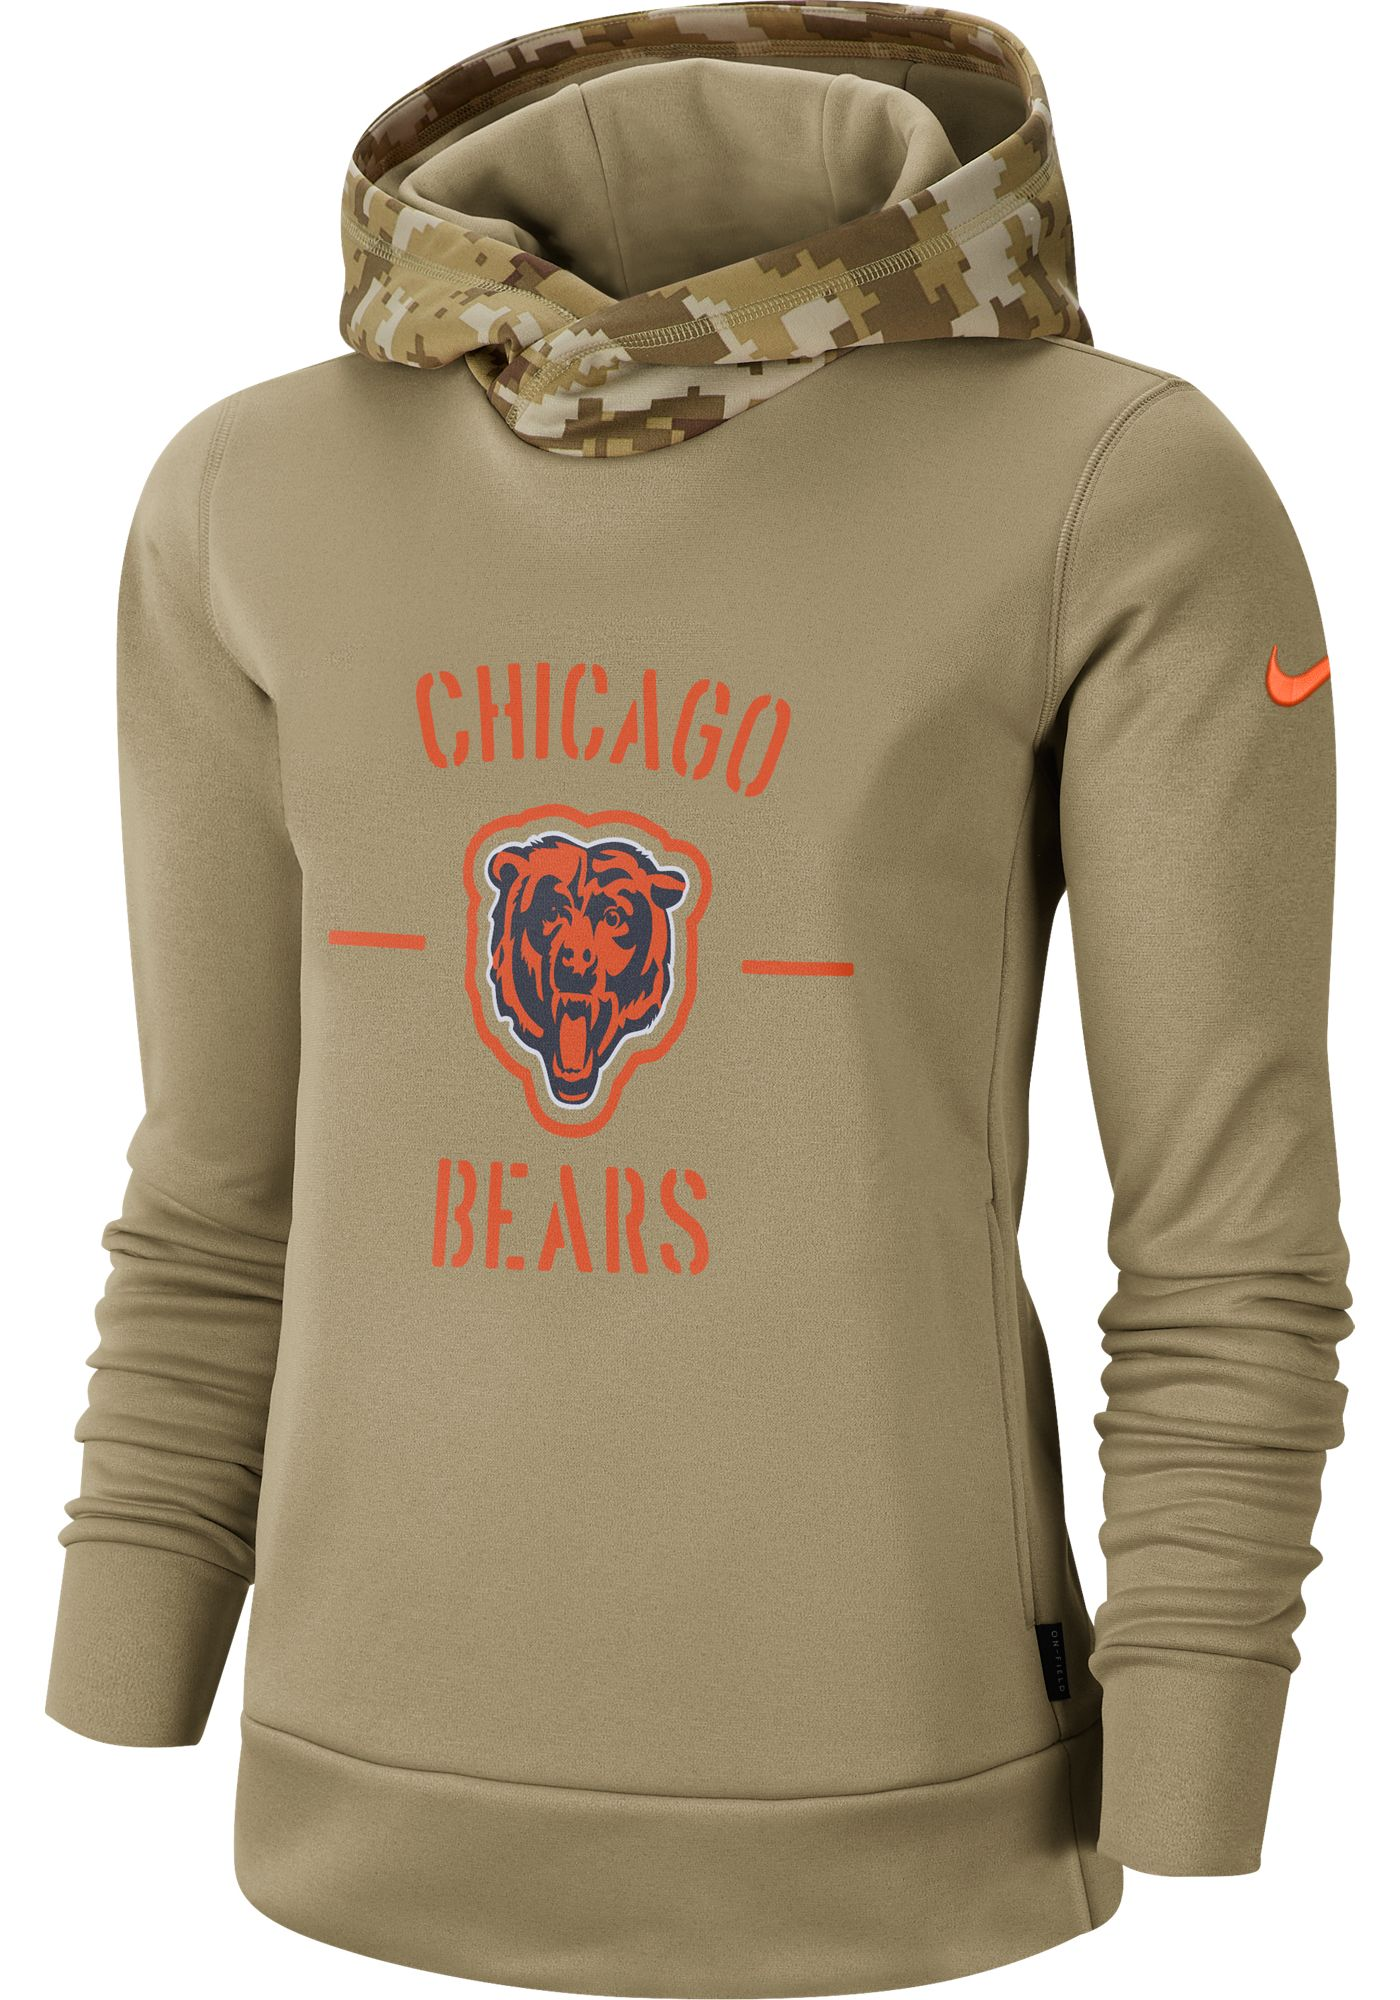 Nike Women's Salute to Service Chicago Bears Therma-FIT Beige Camo Hoodie